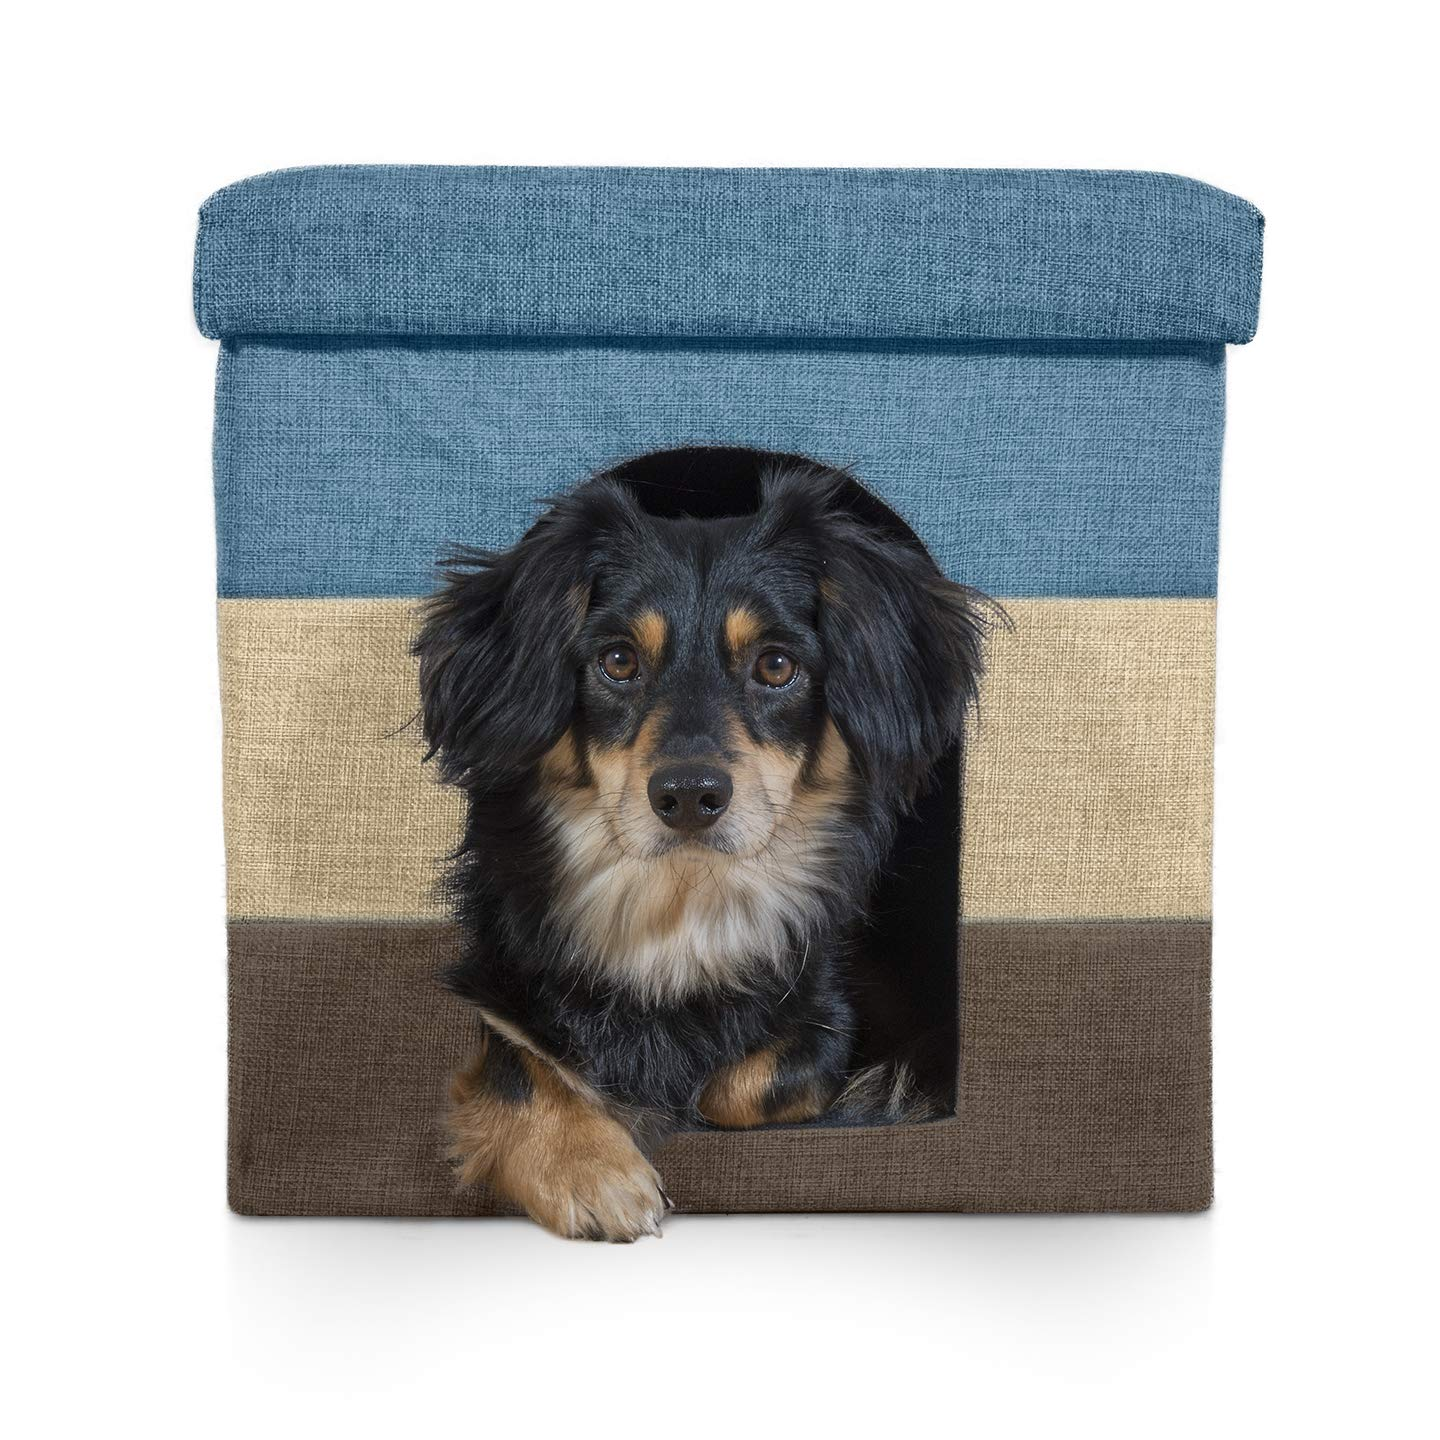 Ottoman Footstool Collapsible Pet Condo for Cats /& Small Dogs Furhaven Pet Dog Bed /& Cat Bed House Hygge Stripe Gray /& Cream Large